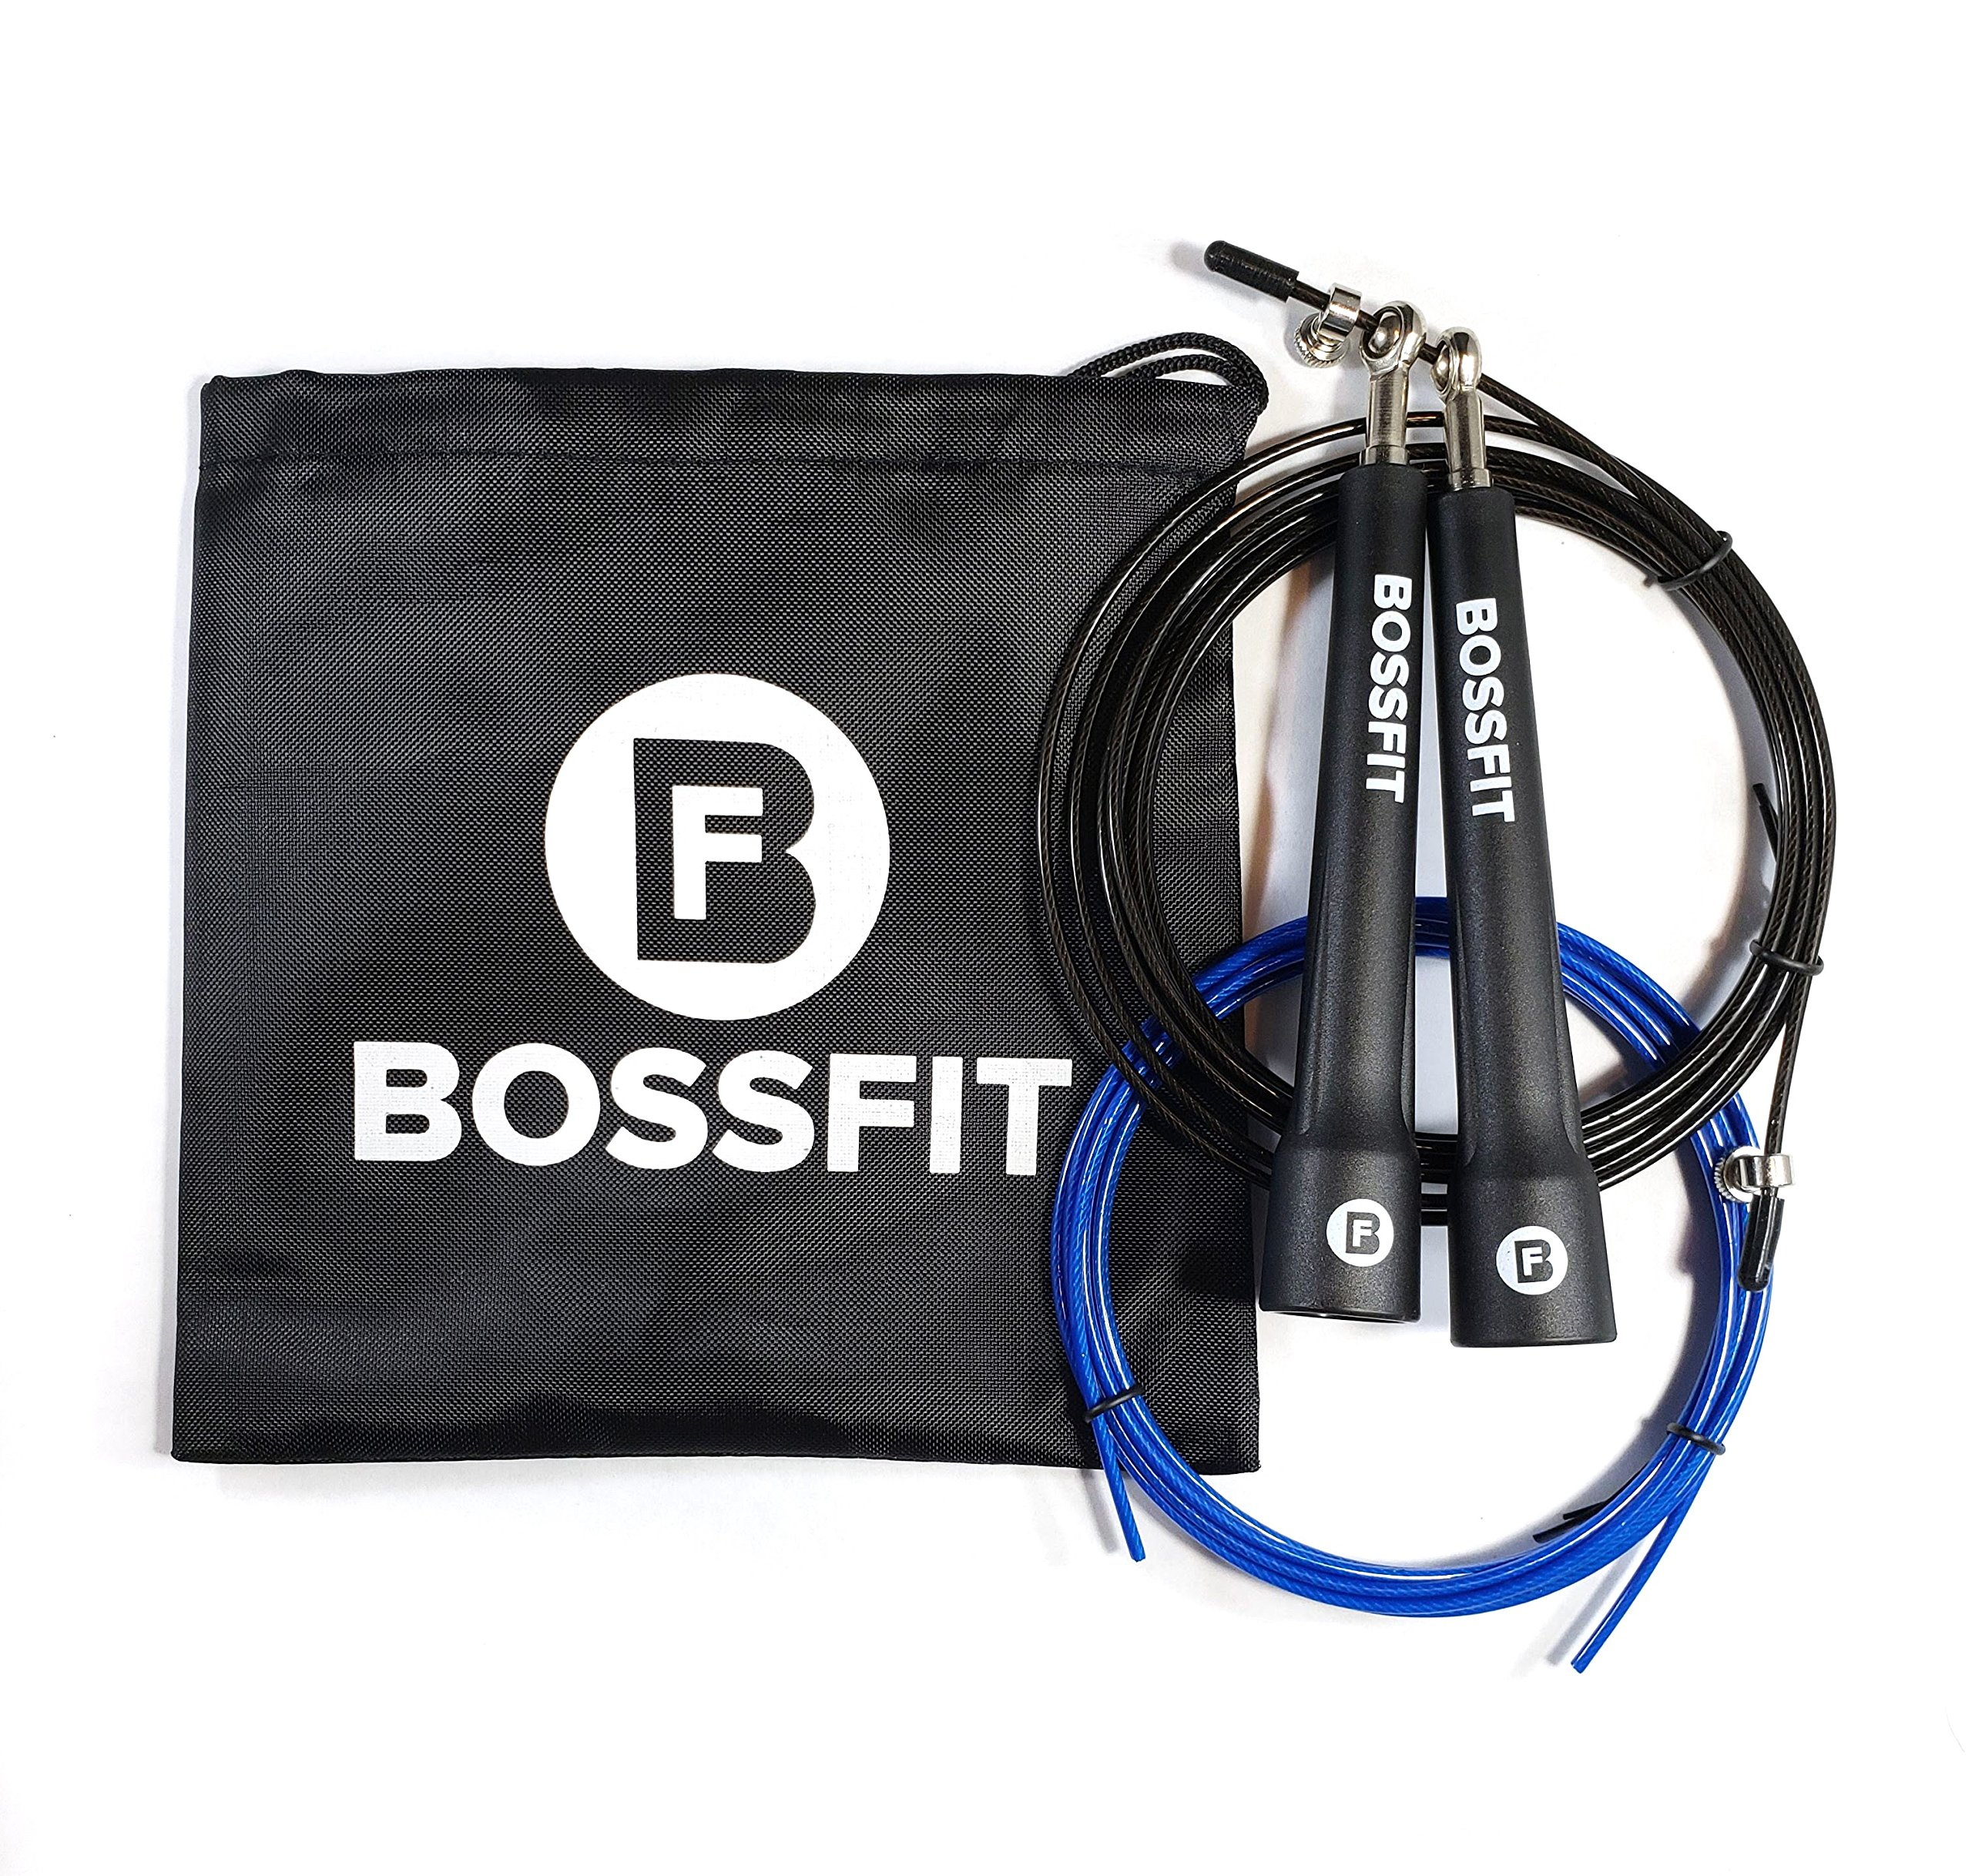 Bossfit Lightweight Speed Jump Rope For Men & Women | Heavy Duty & Fast Skipping Rope For CrossFit & Martial Arts Athletes | Adjustable 2.5mm Coated Cable & Metal Ball Bearings | BONUS Storage Bag